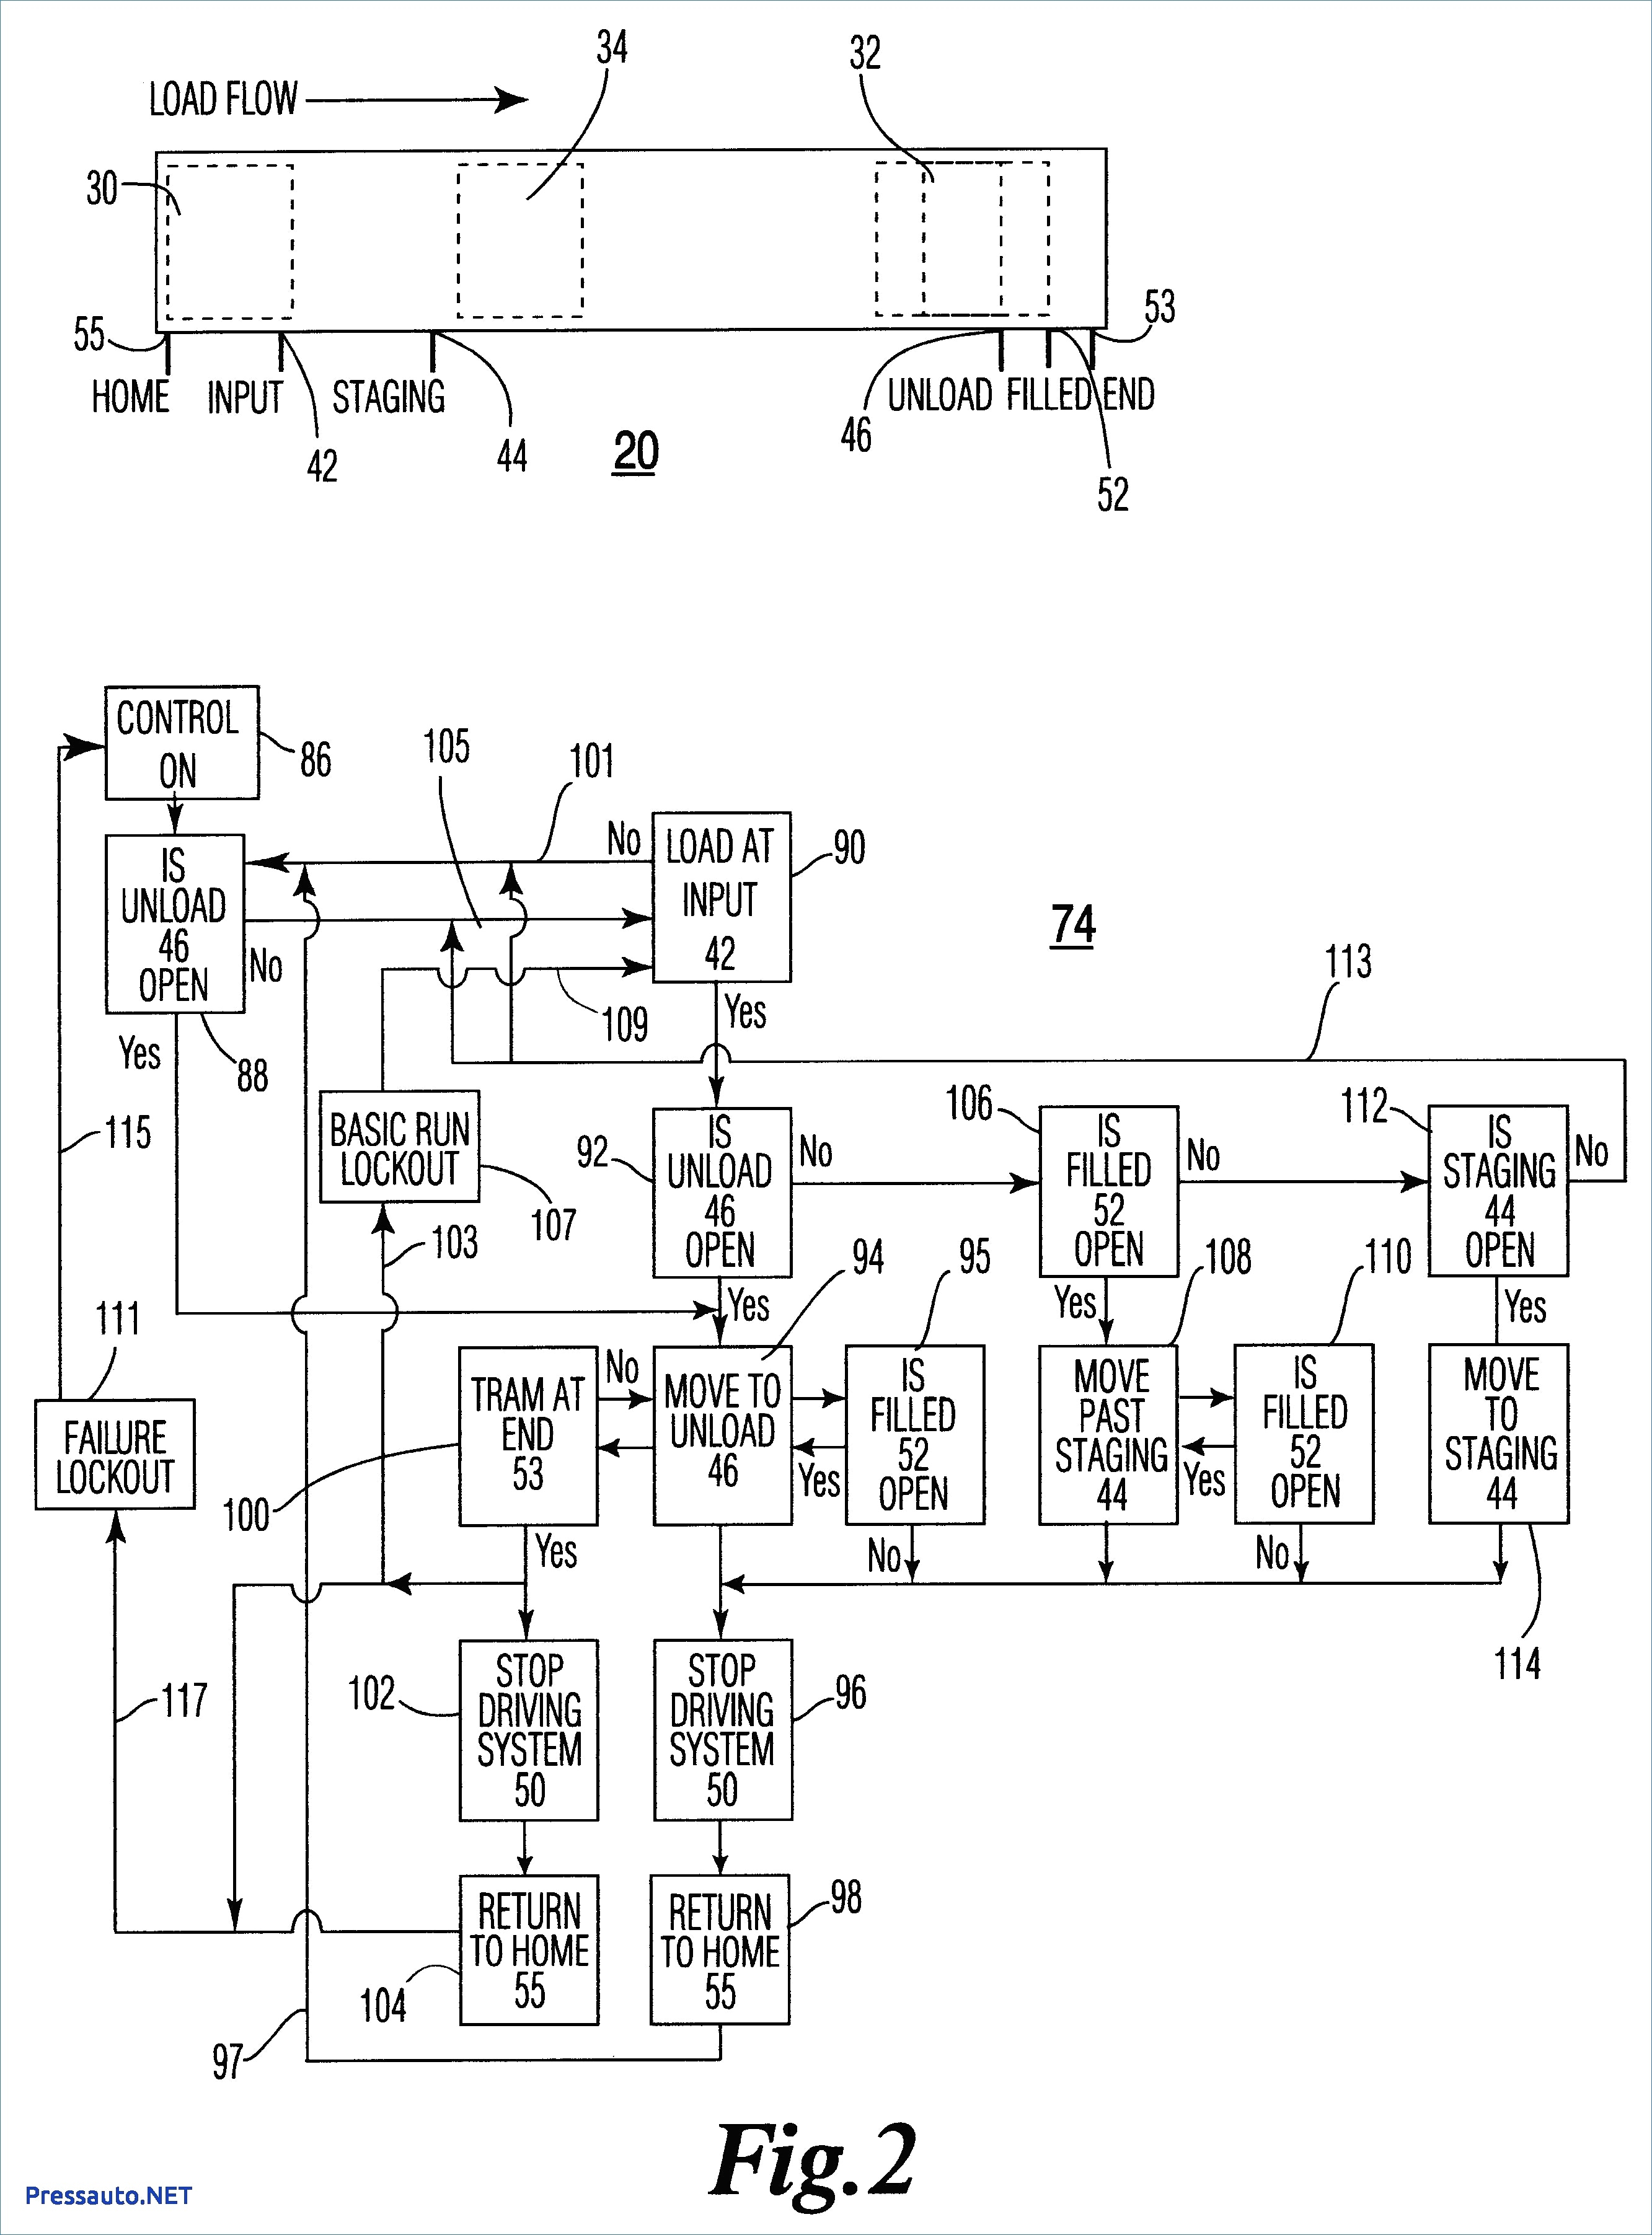 auto transformer wiring diagram motor starter single phase acme hight resolution of diagrams get free image about autotransformer